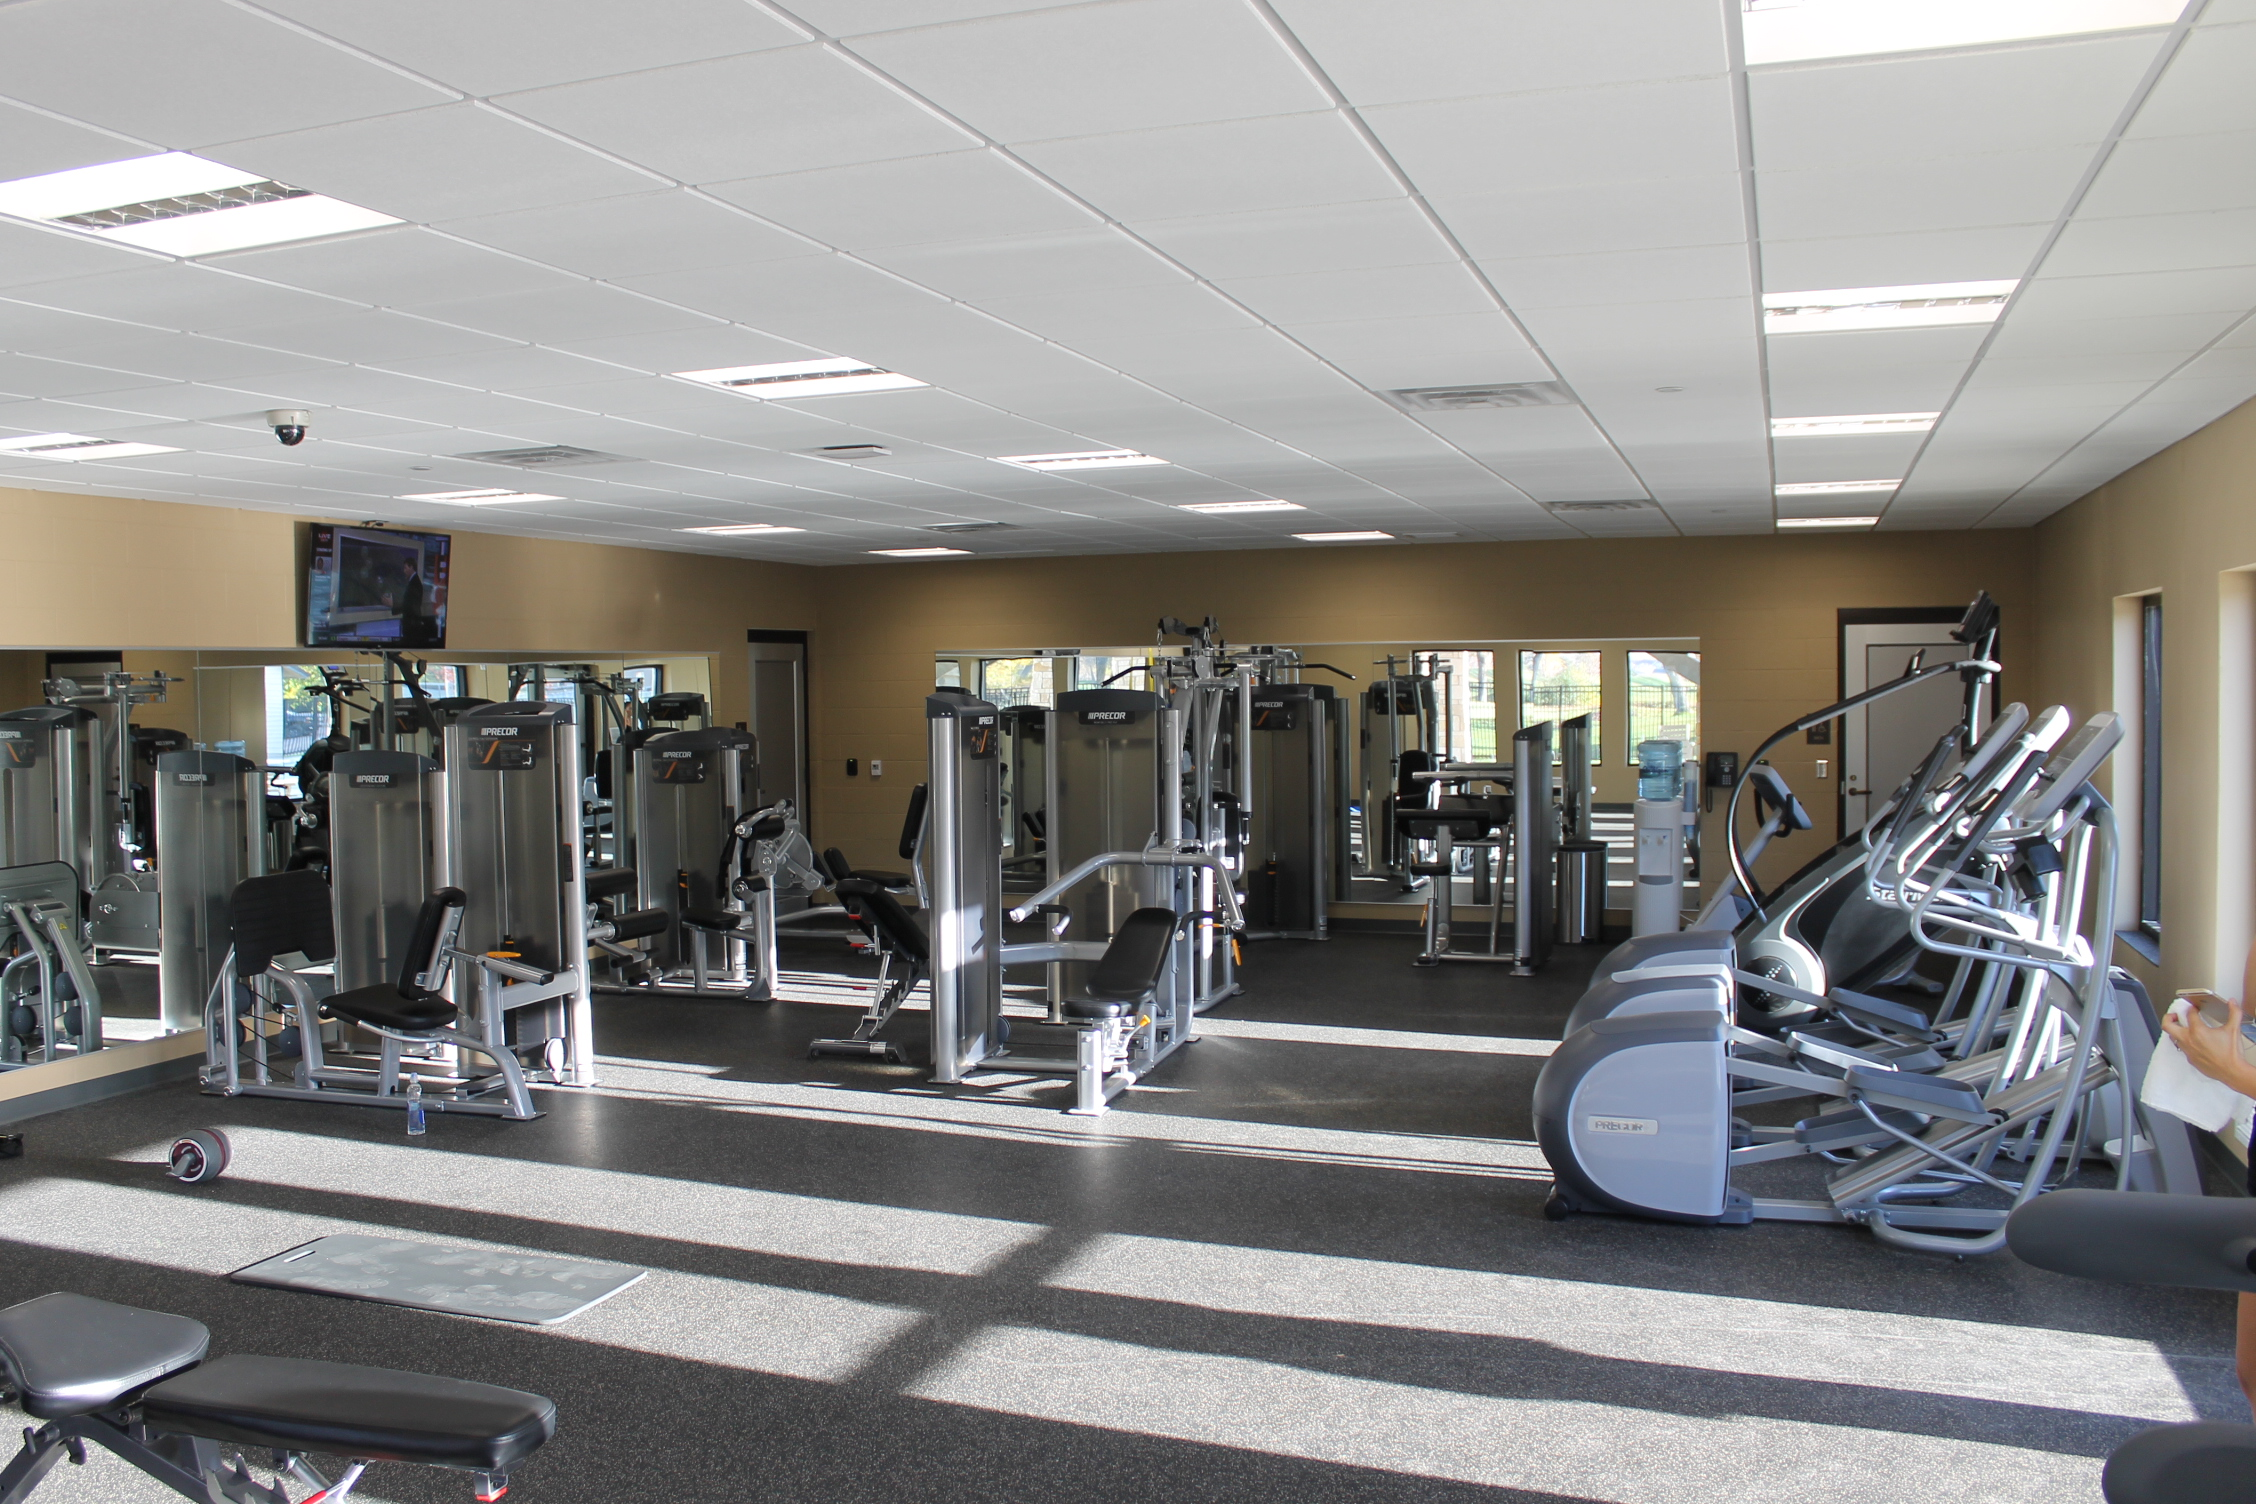 The Country Club of Sioux Falls clean living in the wellness center through cardio, personal training, therapy, special member services South Dakota